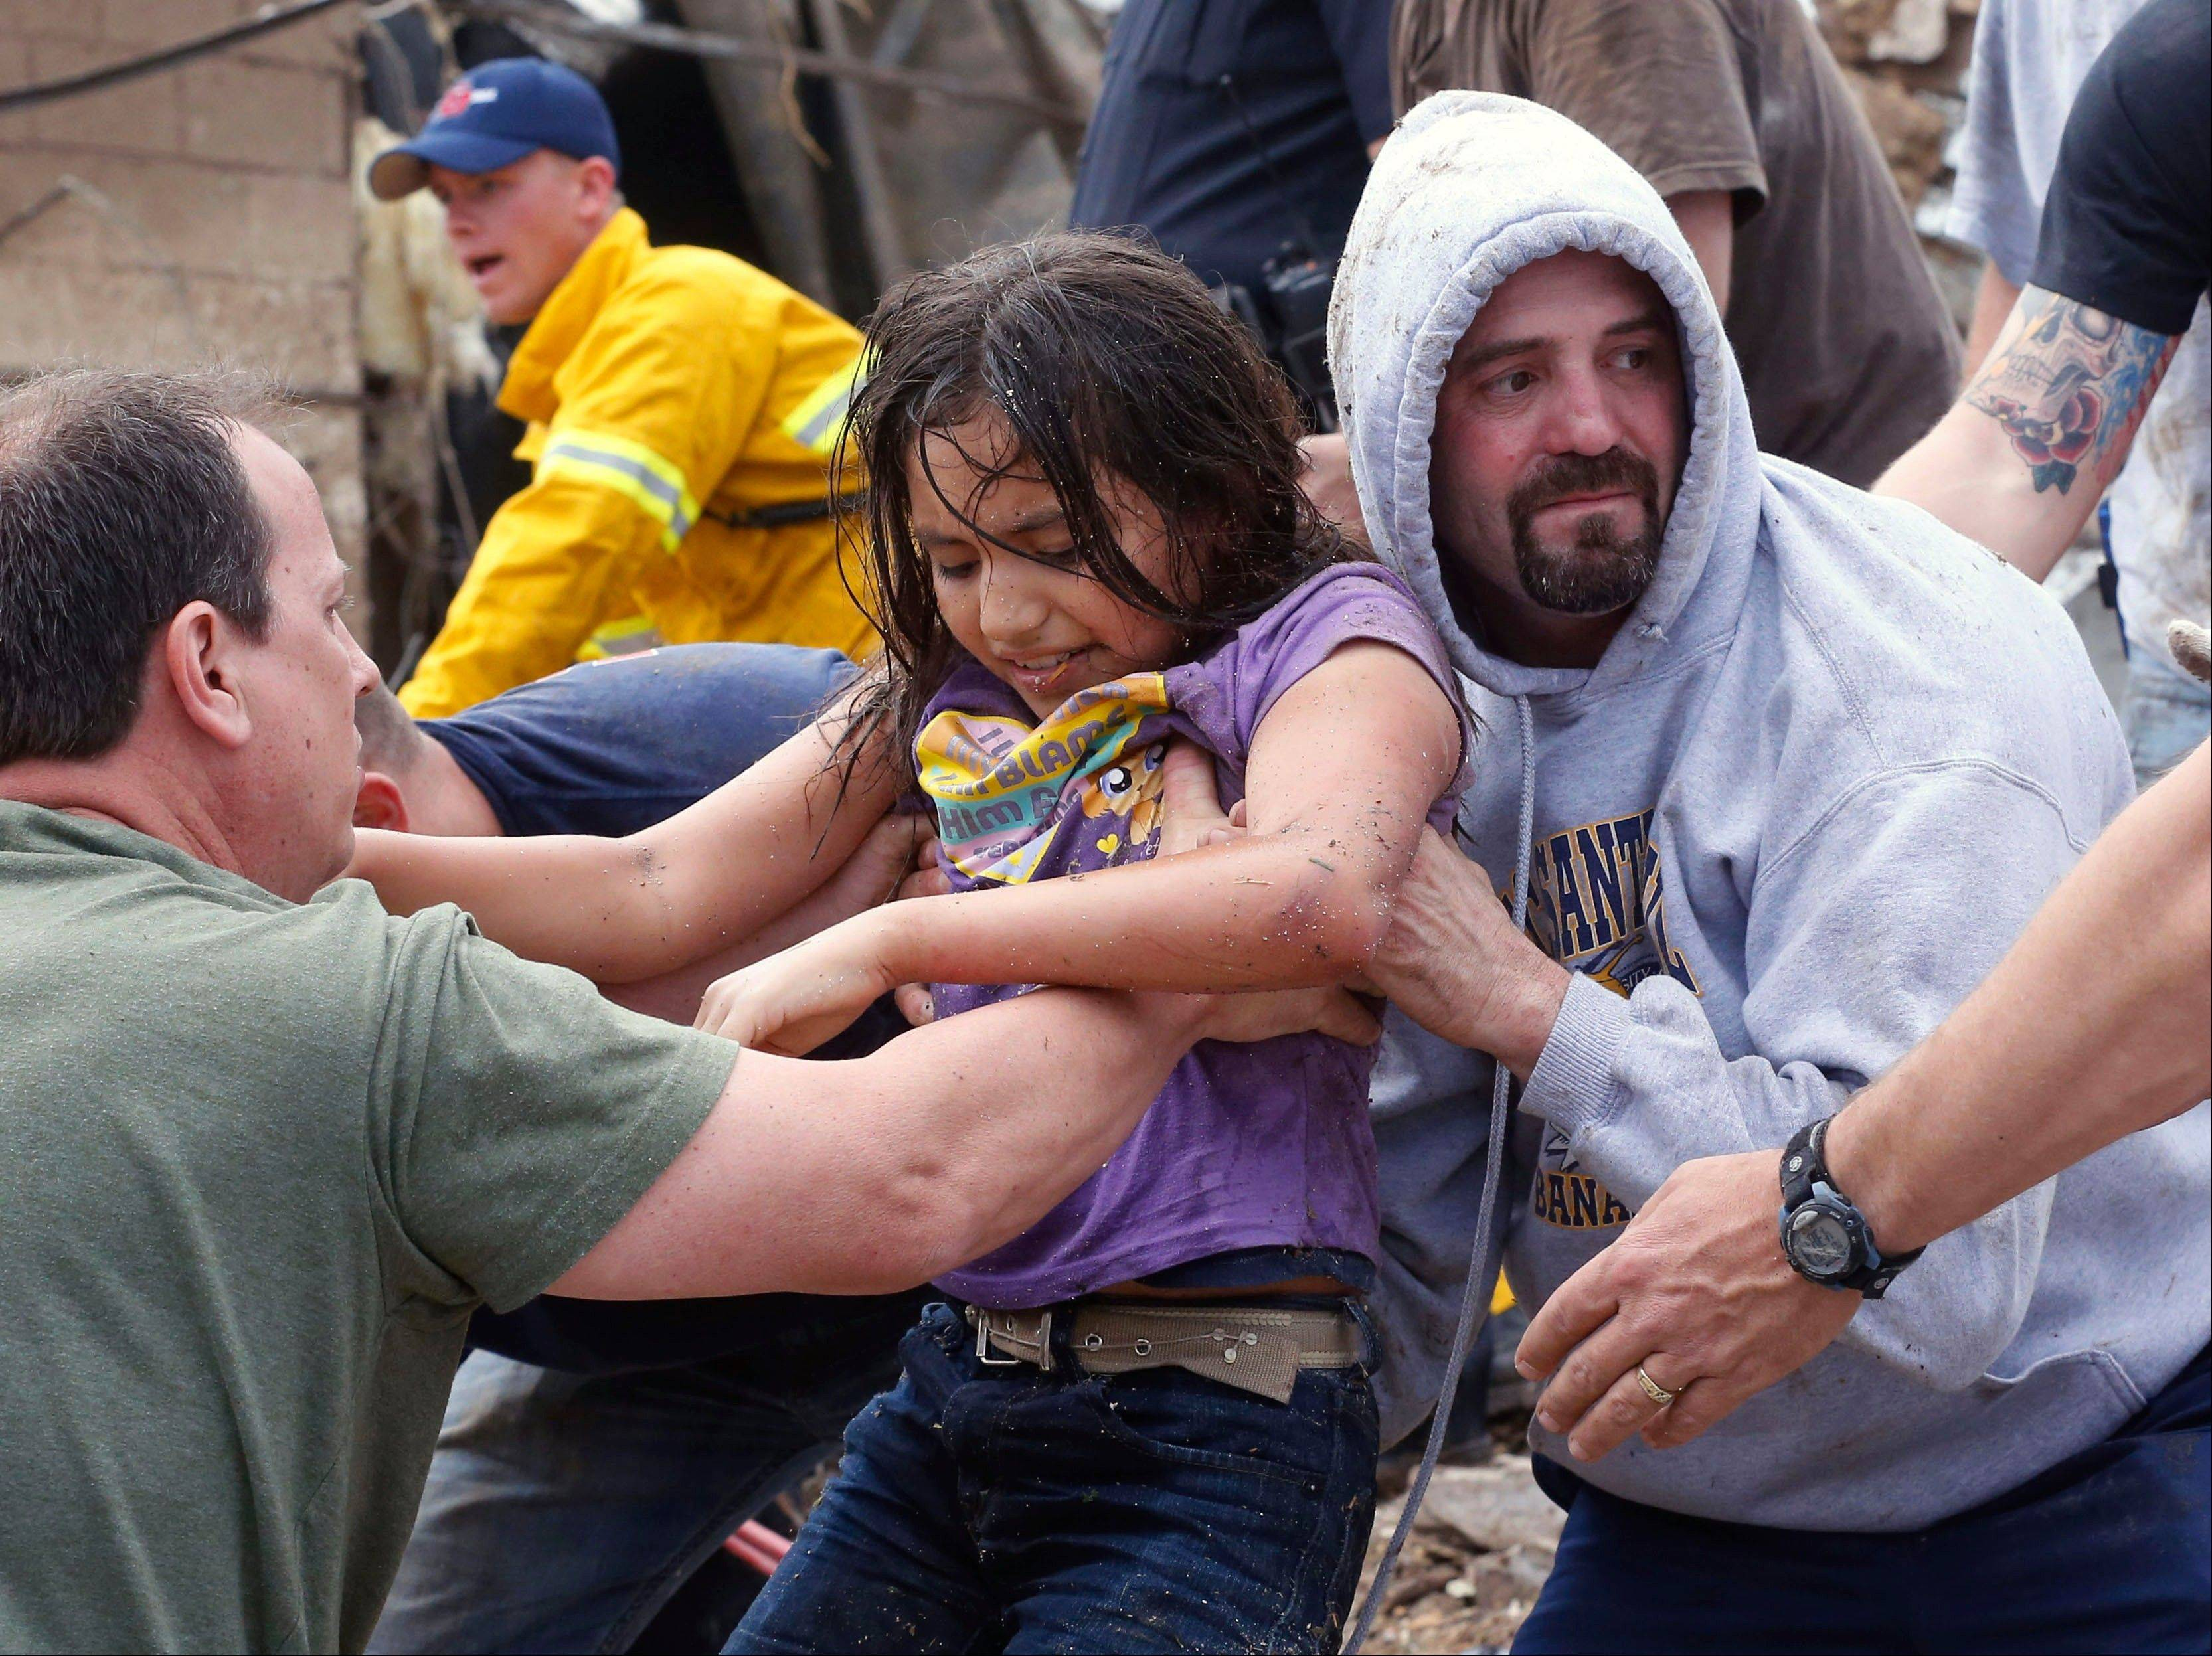 A child is passed along a human chain of people after being pulled from the rubble of the Plaza Towers Elementary School in Moore, Okla., after a tornado roared through the Oklahoma City suburbs in May. Oklahoma was among the 28 states and the District of Columbia faulted by Save the Children for failing to require the emergency safety plans for schools and child care providers that were recommended in the wake of Hurricane Katrina.